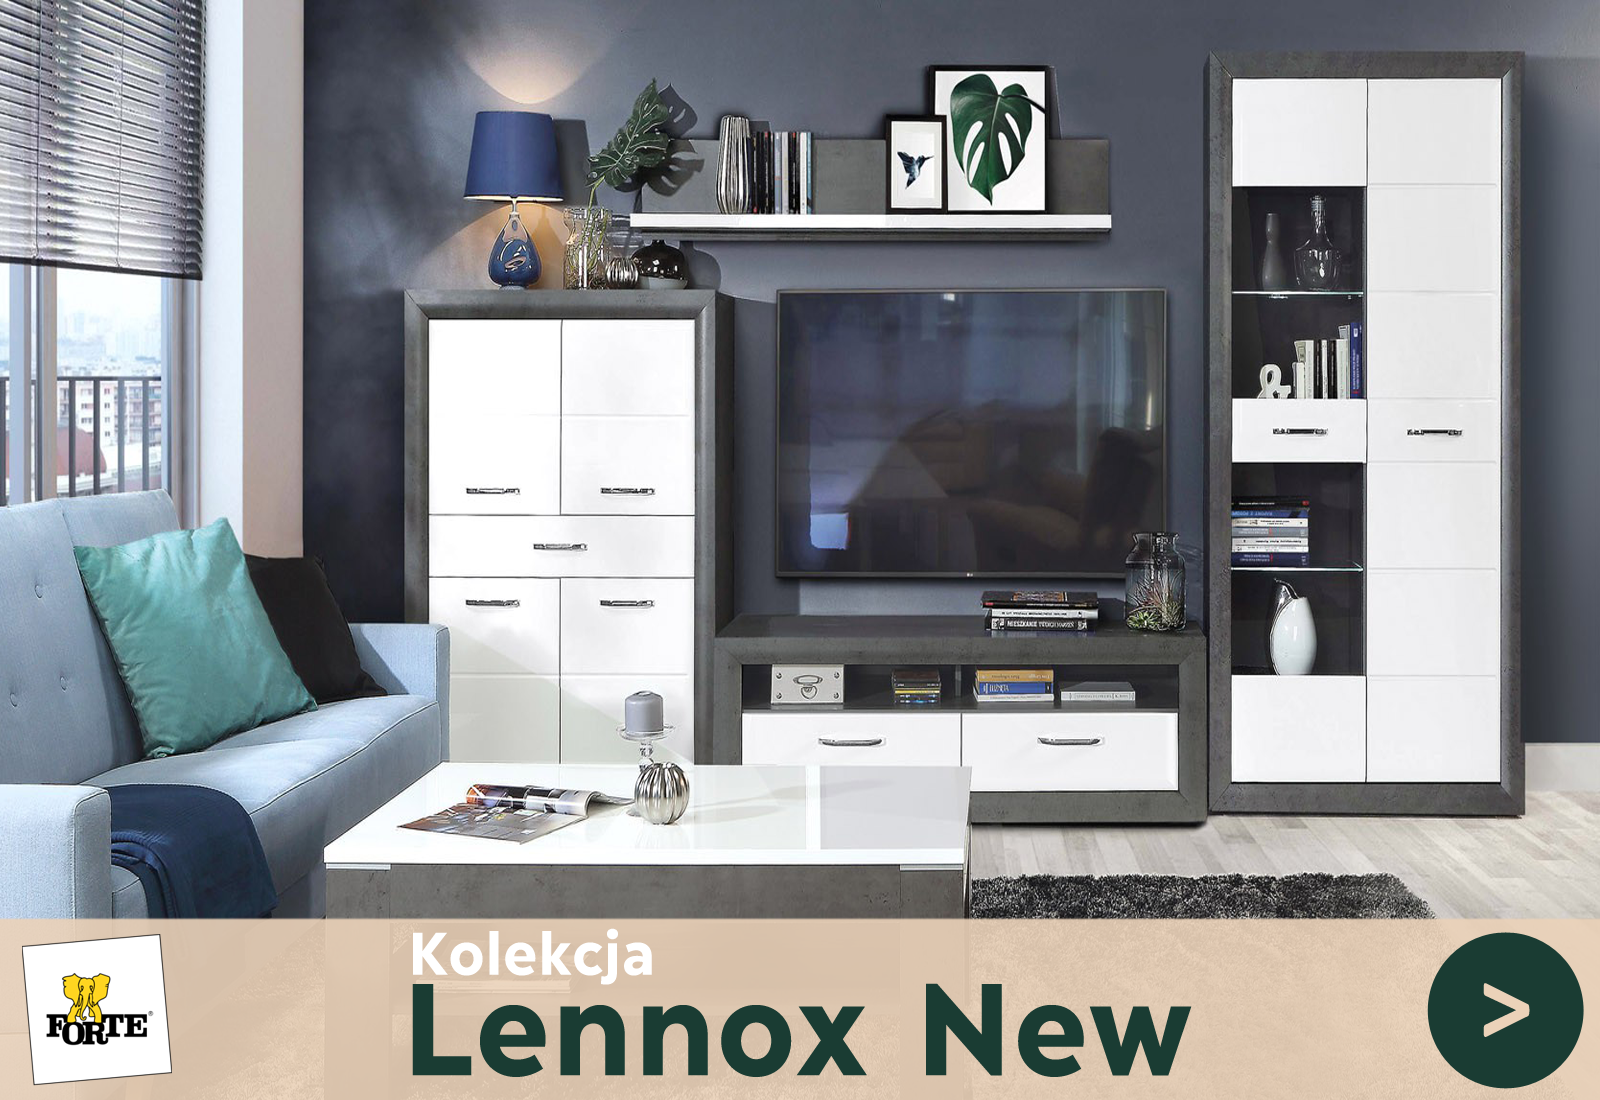 Lennox new